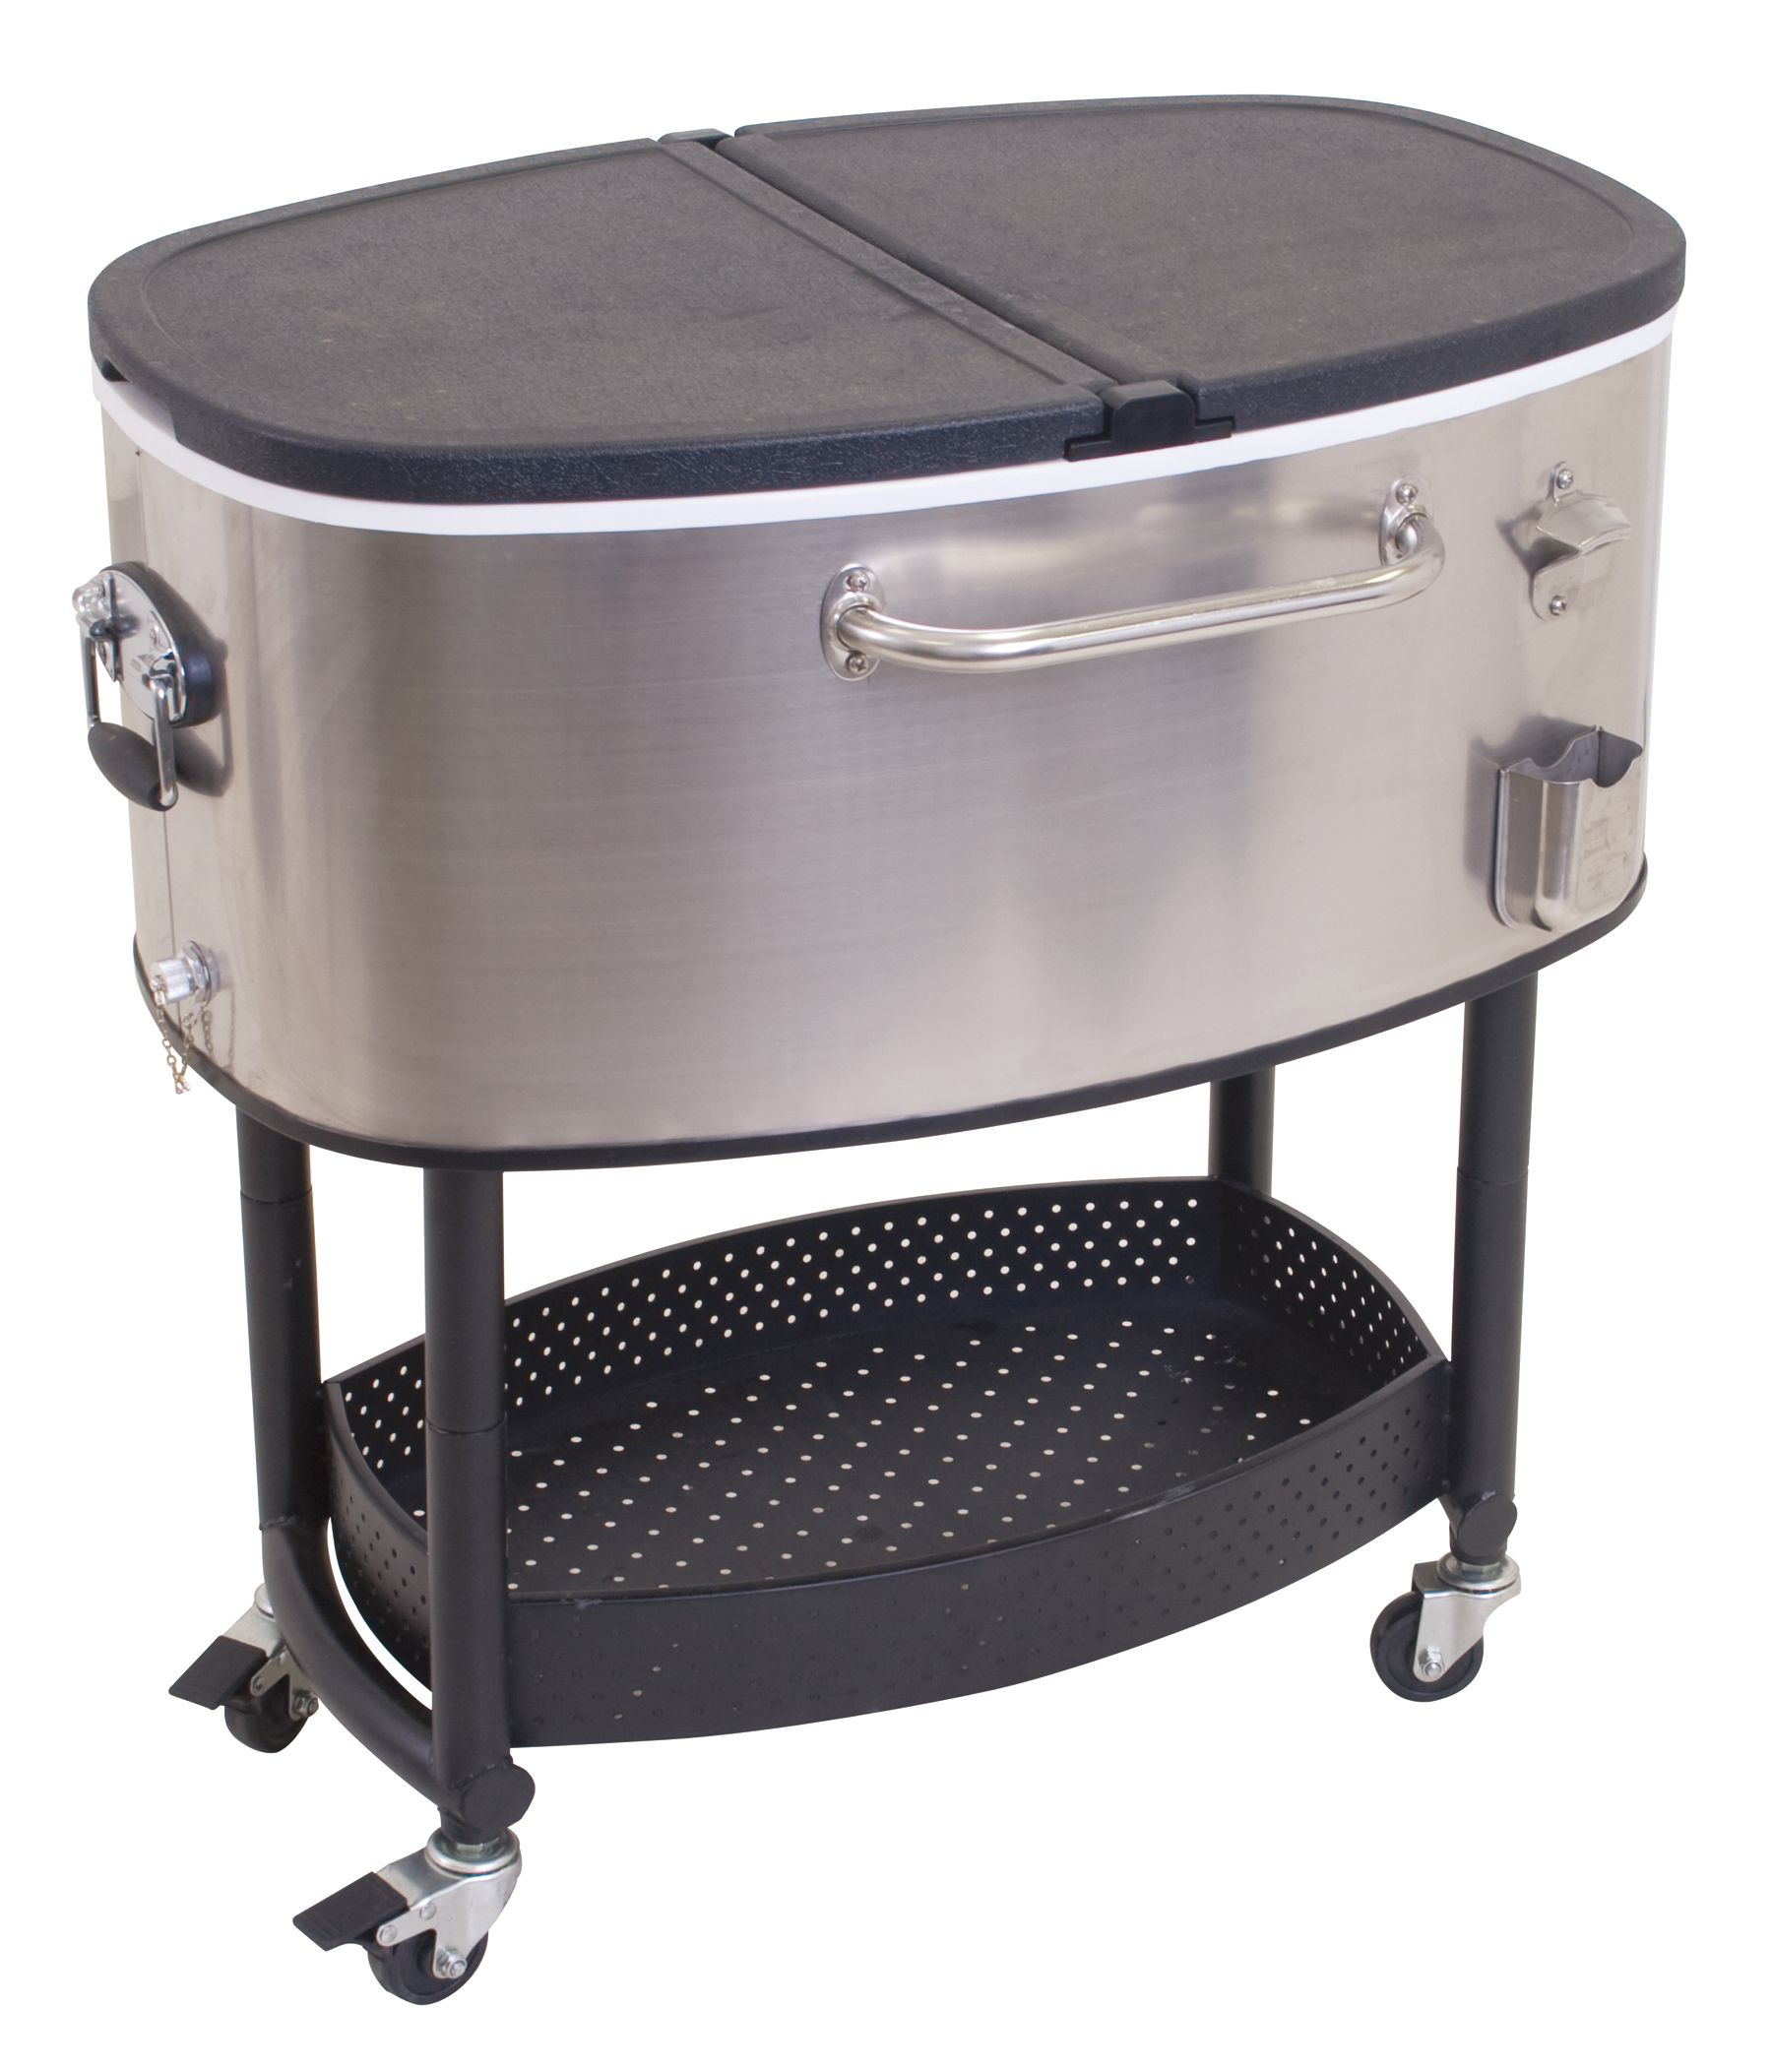 Stainless Steel Rolling Party Cooler